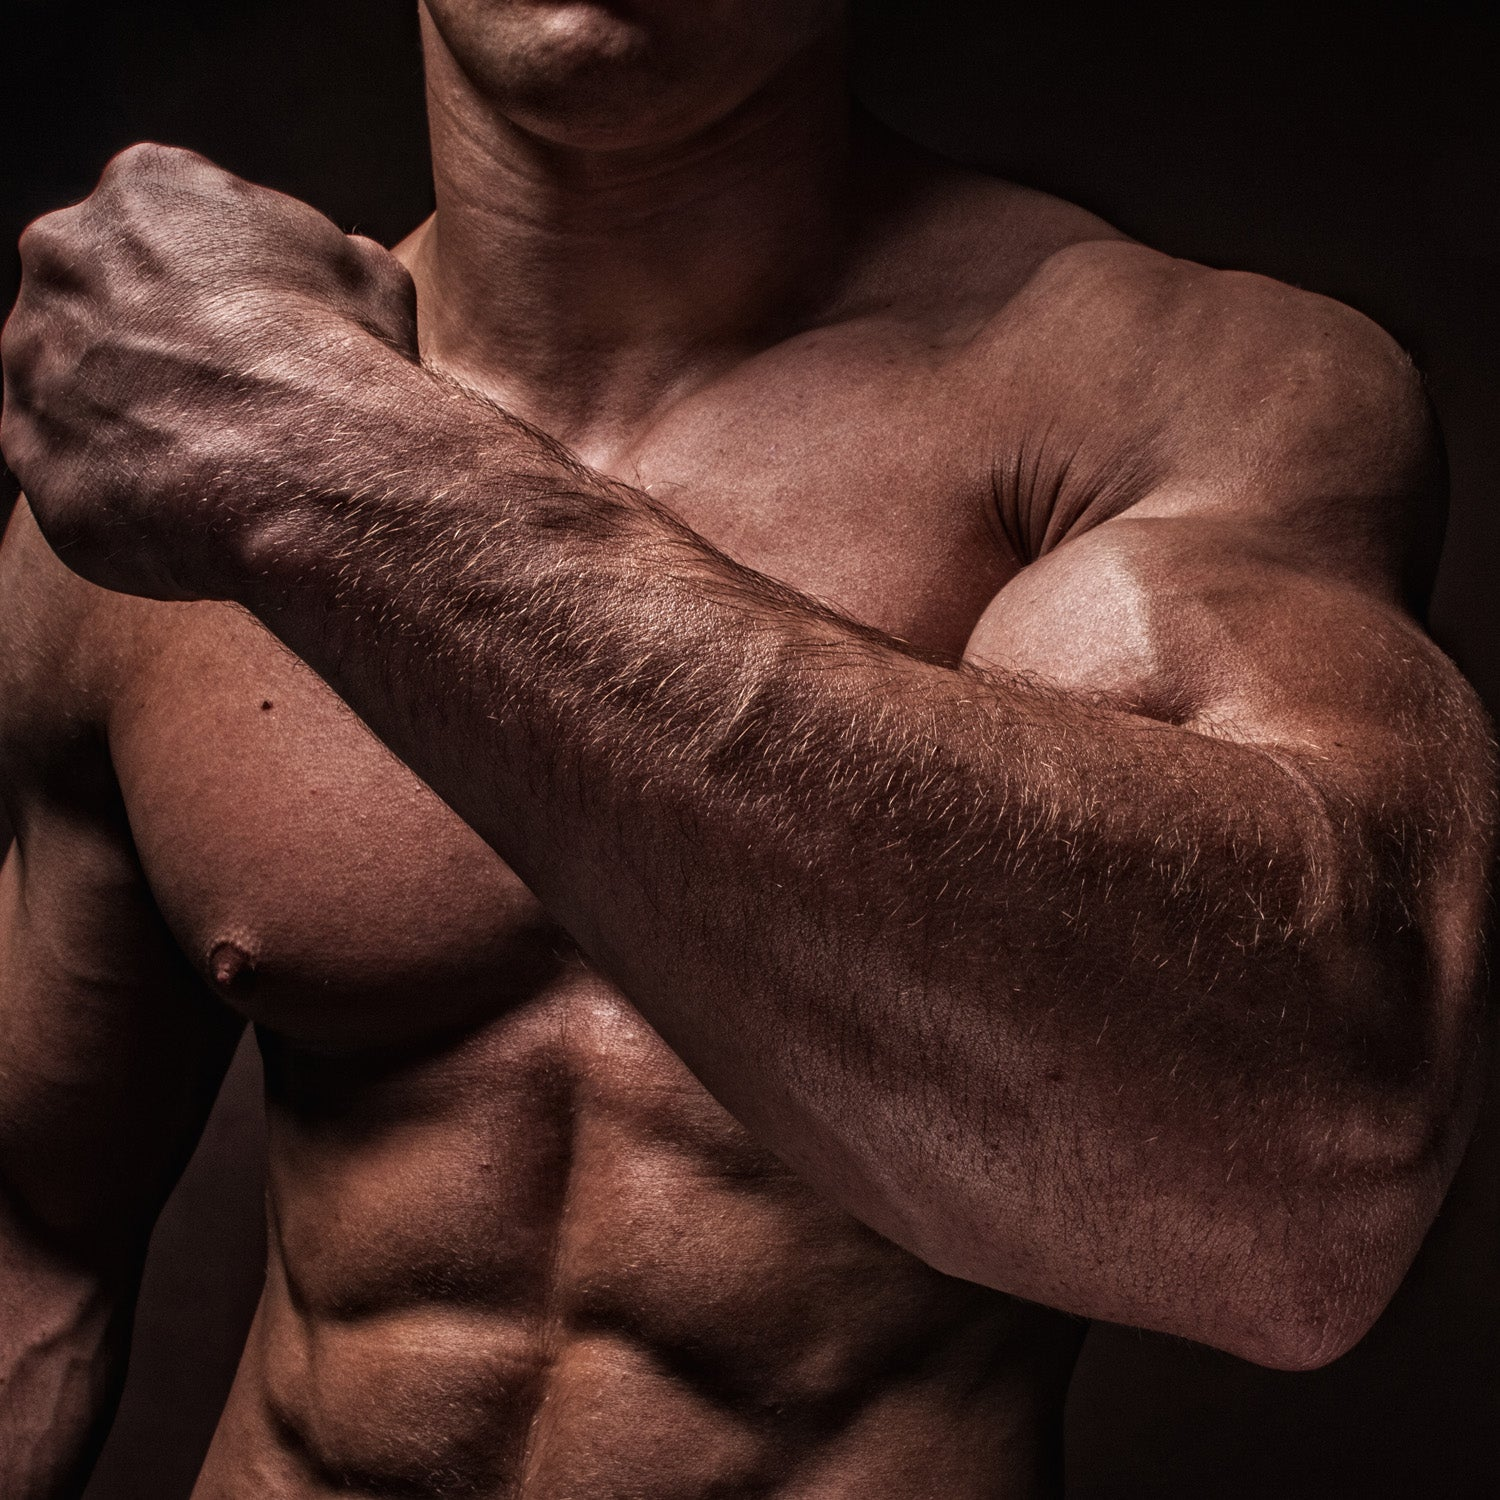 5 Sure-Fire Ways To Build Bigger, Better Arms